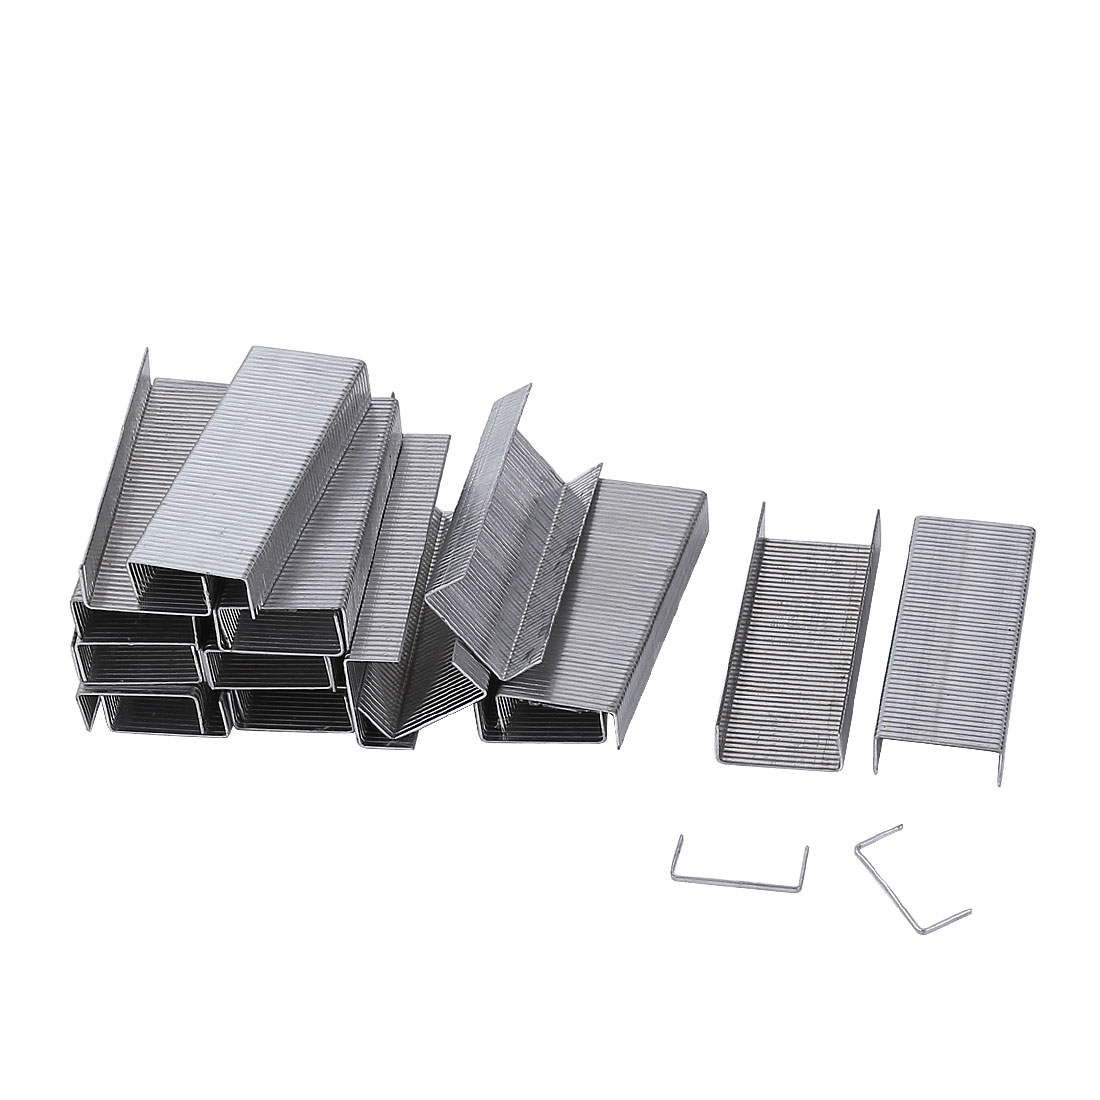 Office Metal Paper Document Binding Staples 24/6 2000 Pcs